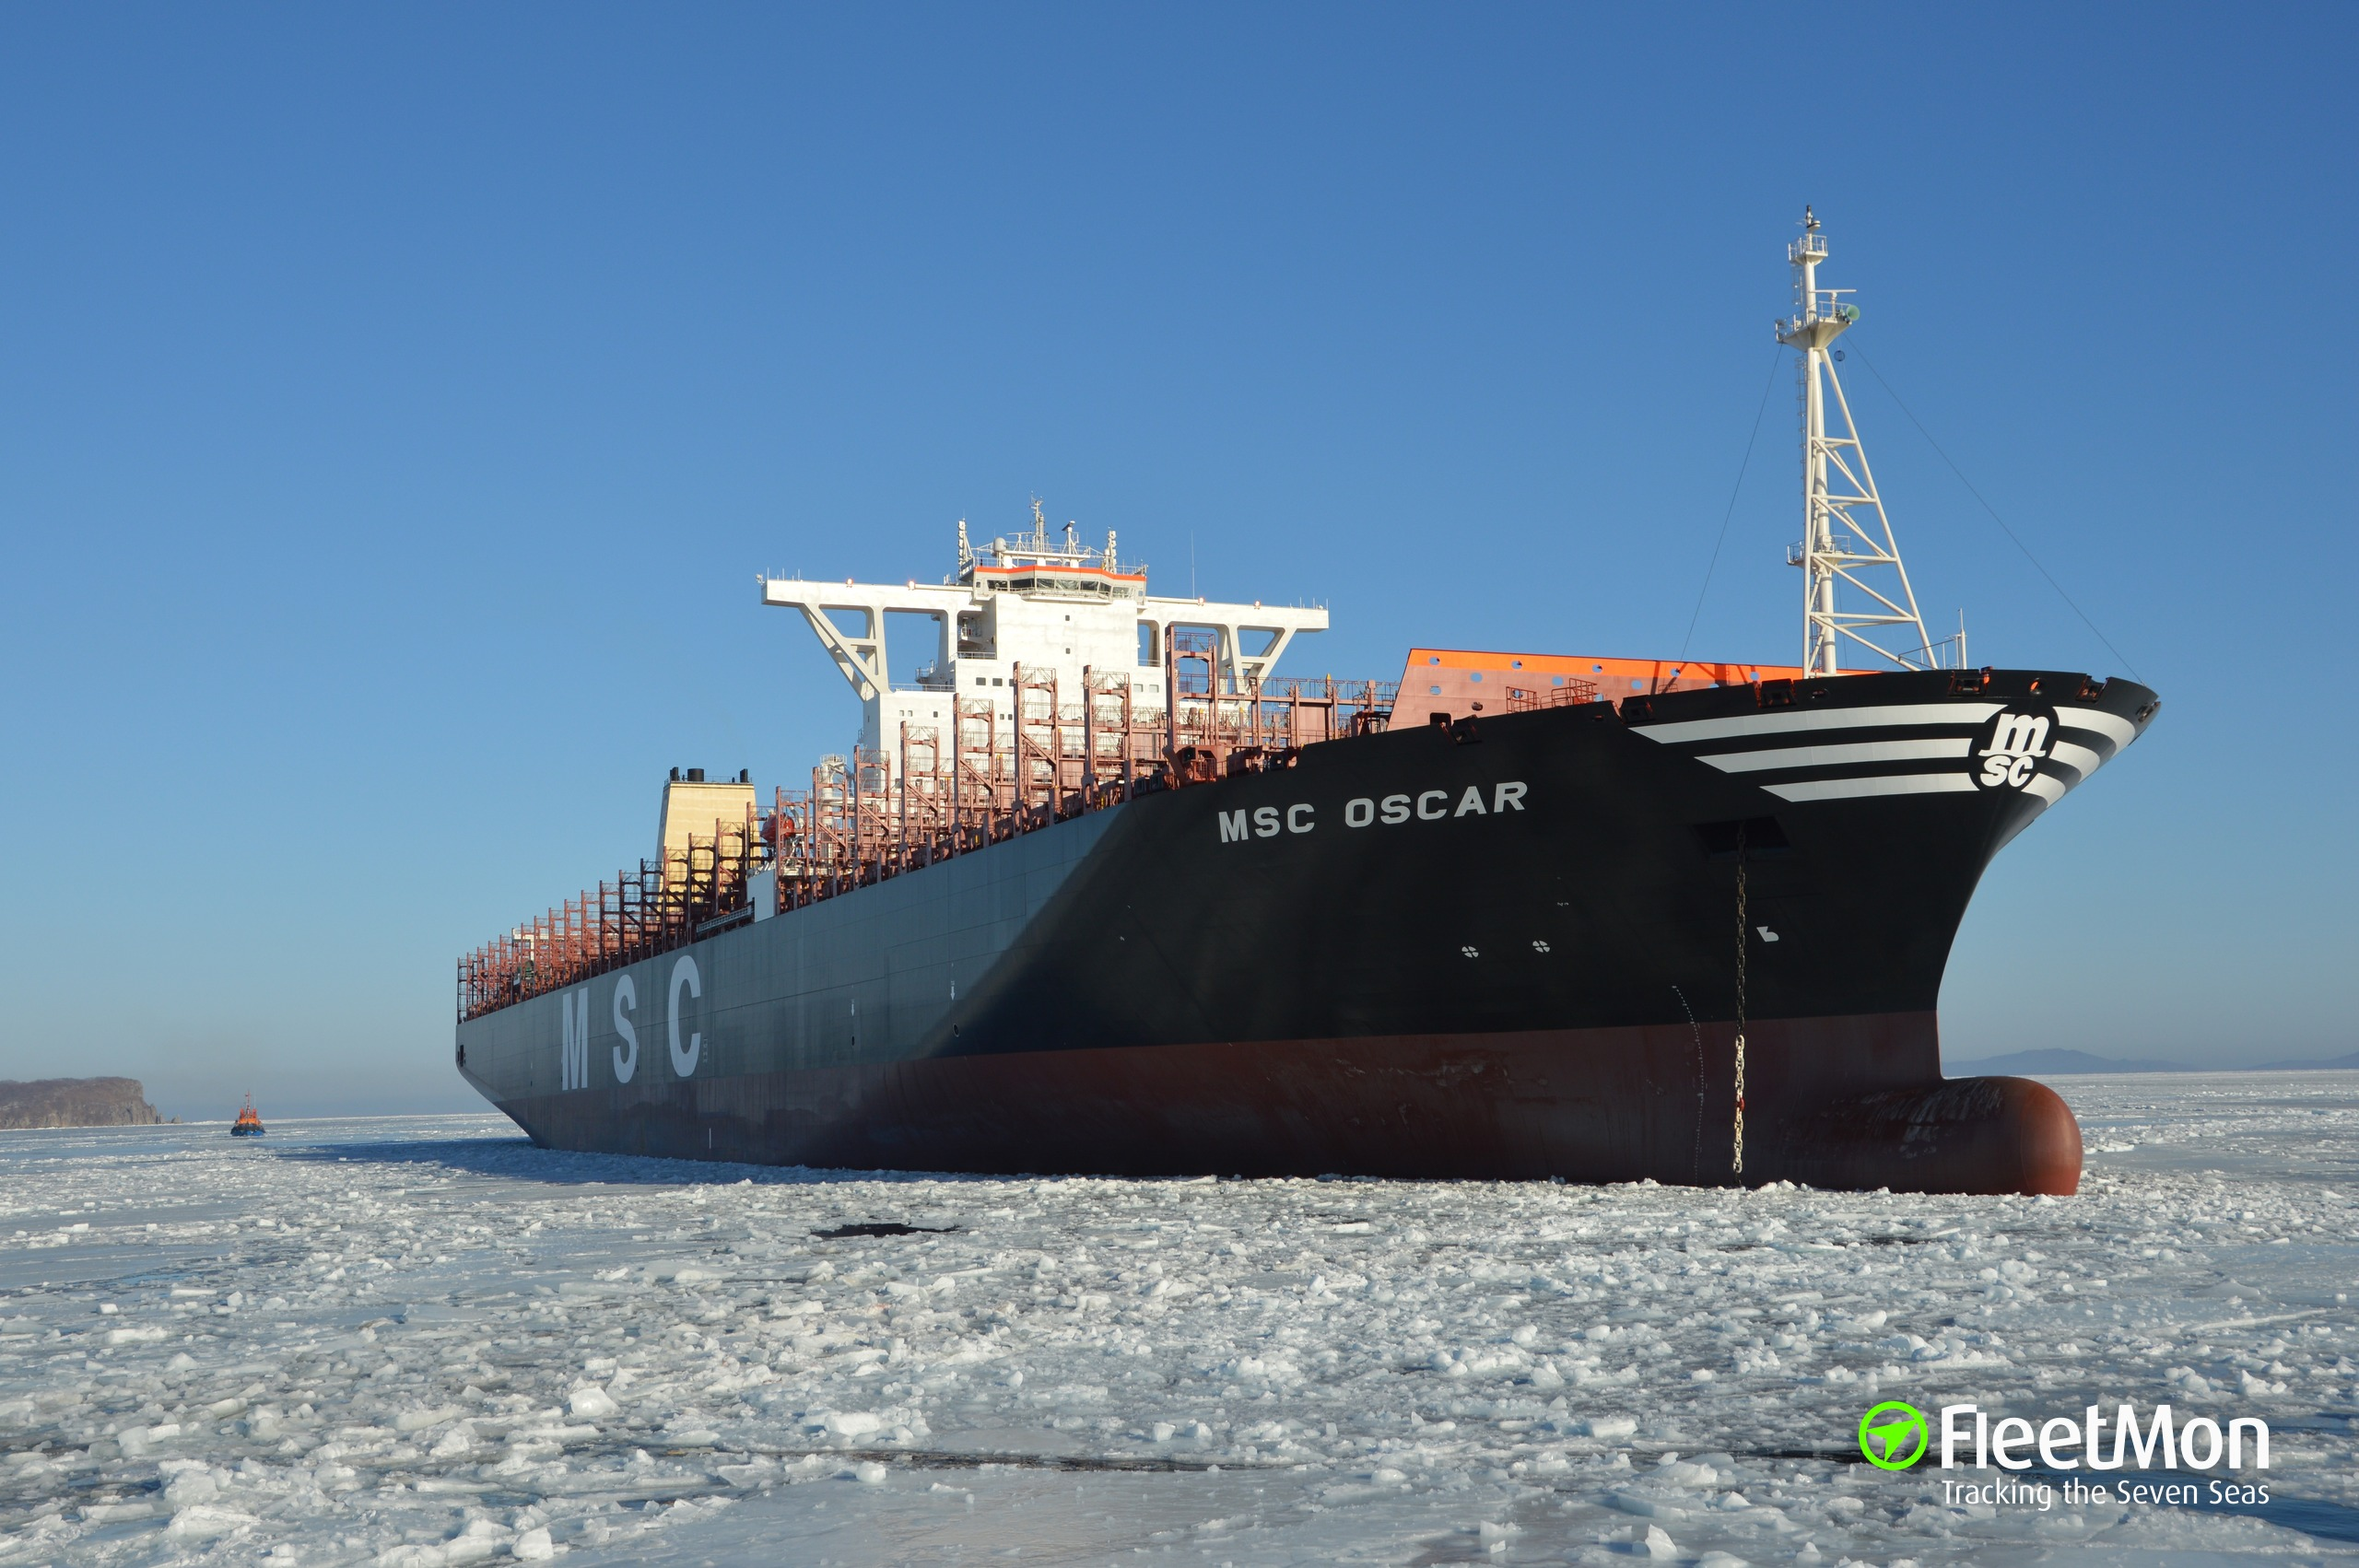 World's largest container ship MSC Oscar in Felixstowe - BBC News